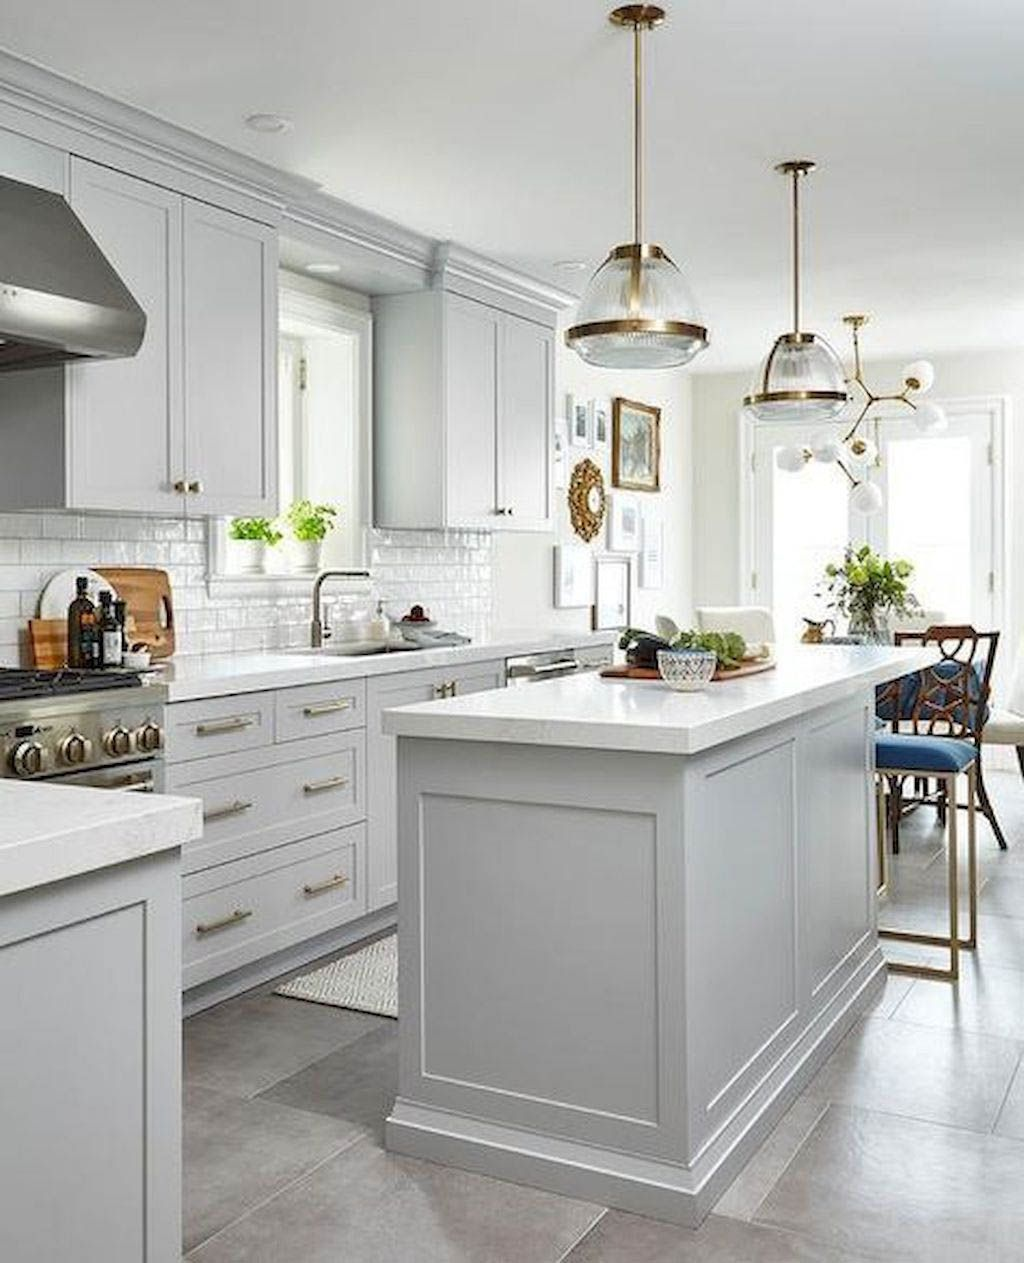 Stunning Kitchen Lighting Ideas For Your New White